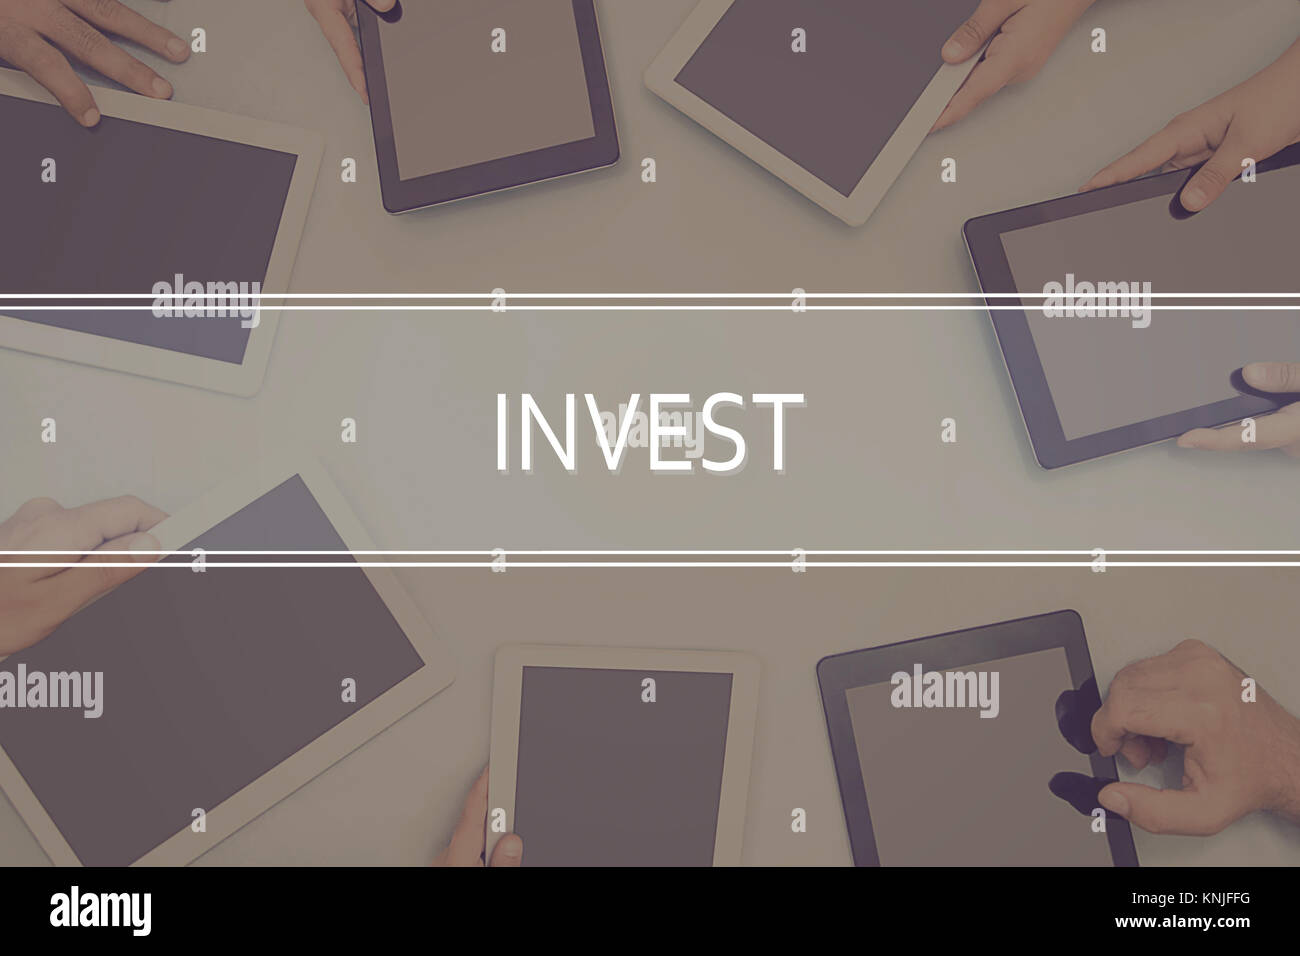 INVEST CONCEPT Business Concept. - Stock Image